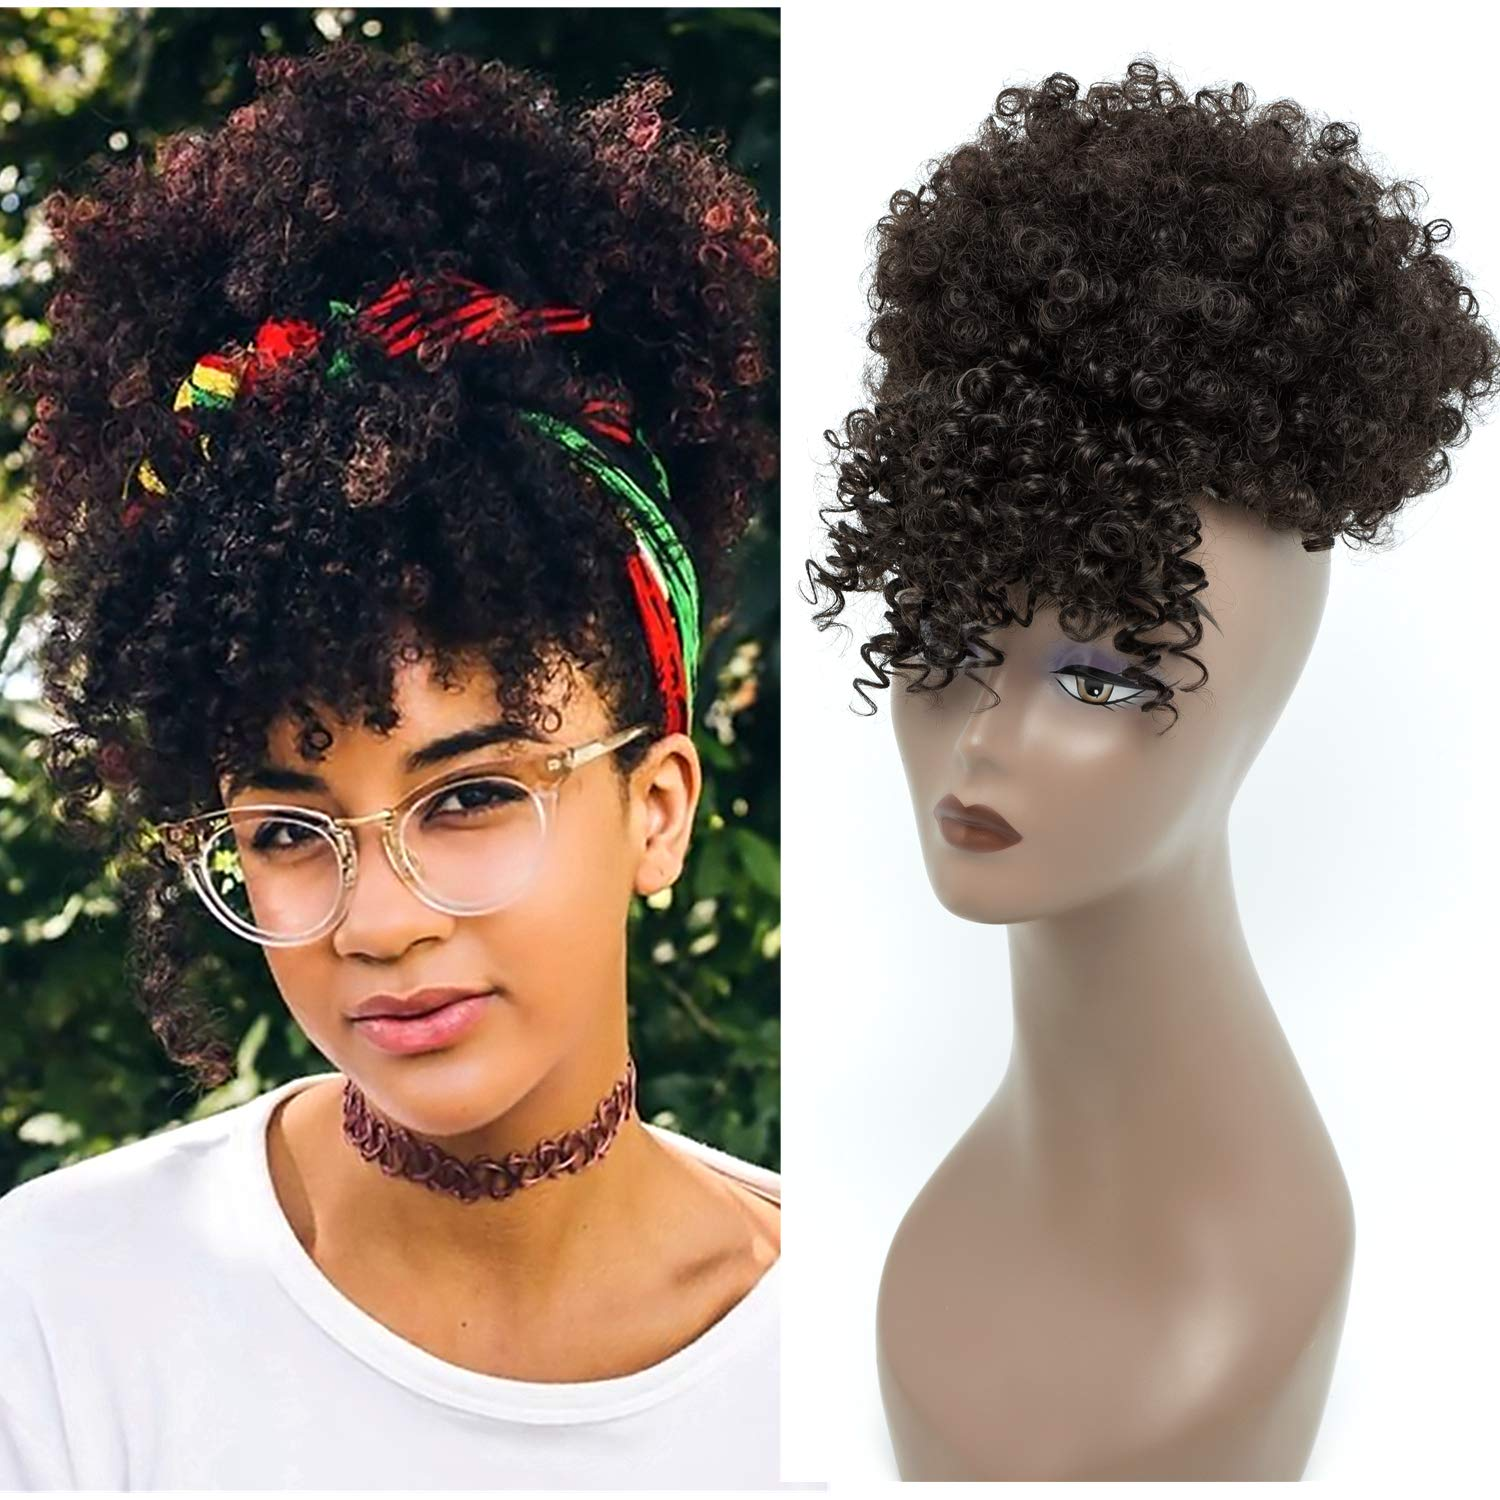 Amazon Com Synthetic Short Kinky Curly Pony Tail High Afro Puff Drawstring Ponytail Clip In On Synthetic Curly Hair Bun Wrap Updo Hair Extensions With Clips Puff Drawstring Ponytail With Bangs 2